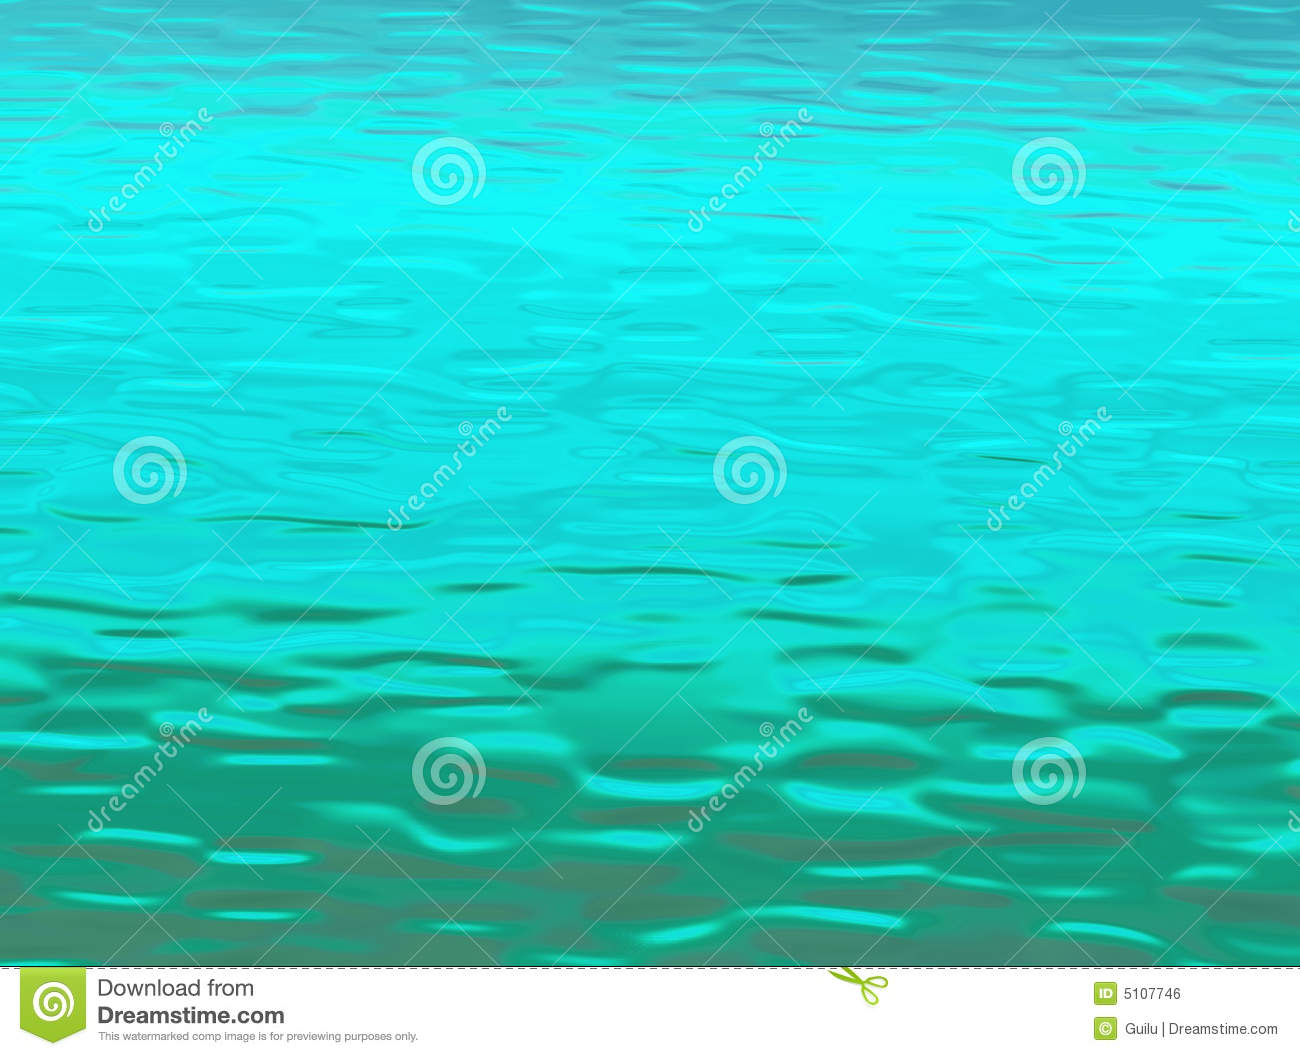 Water Effect Royalty Free Stock Image Image 5107746